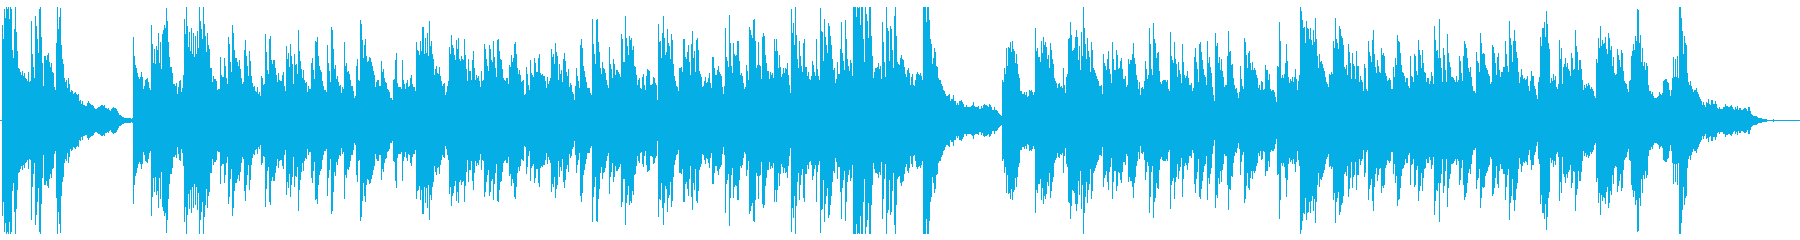 Refreshing wedding style BGM's reproduced waveform